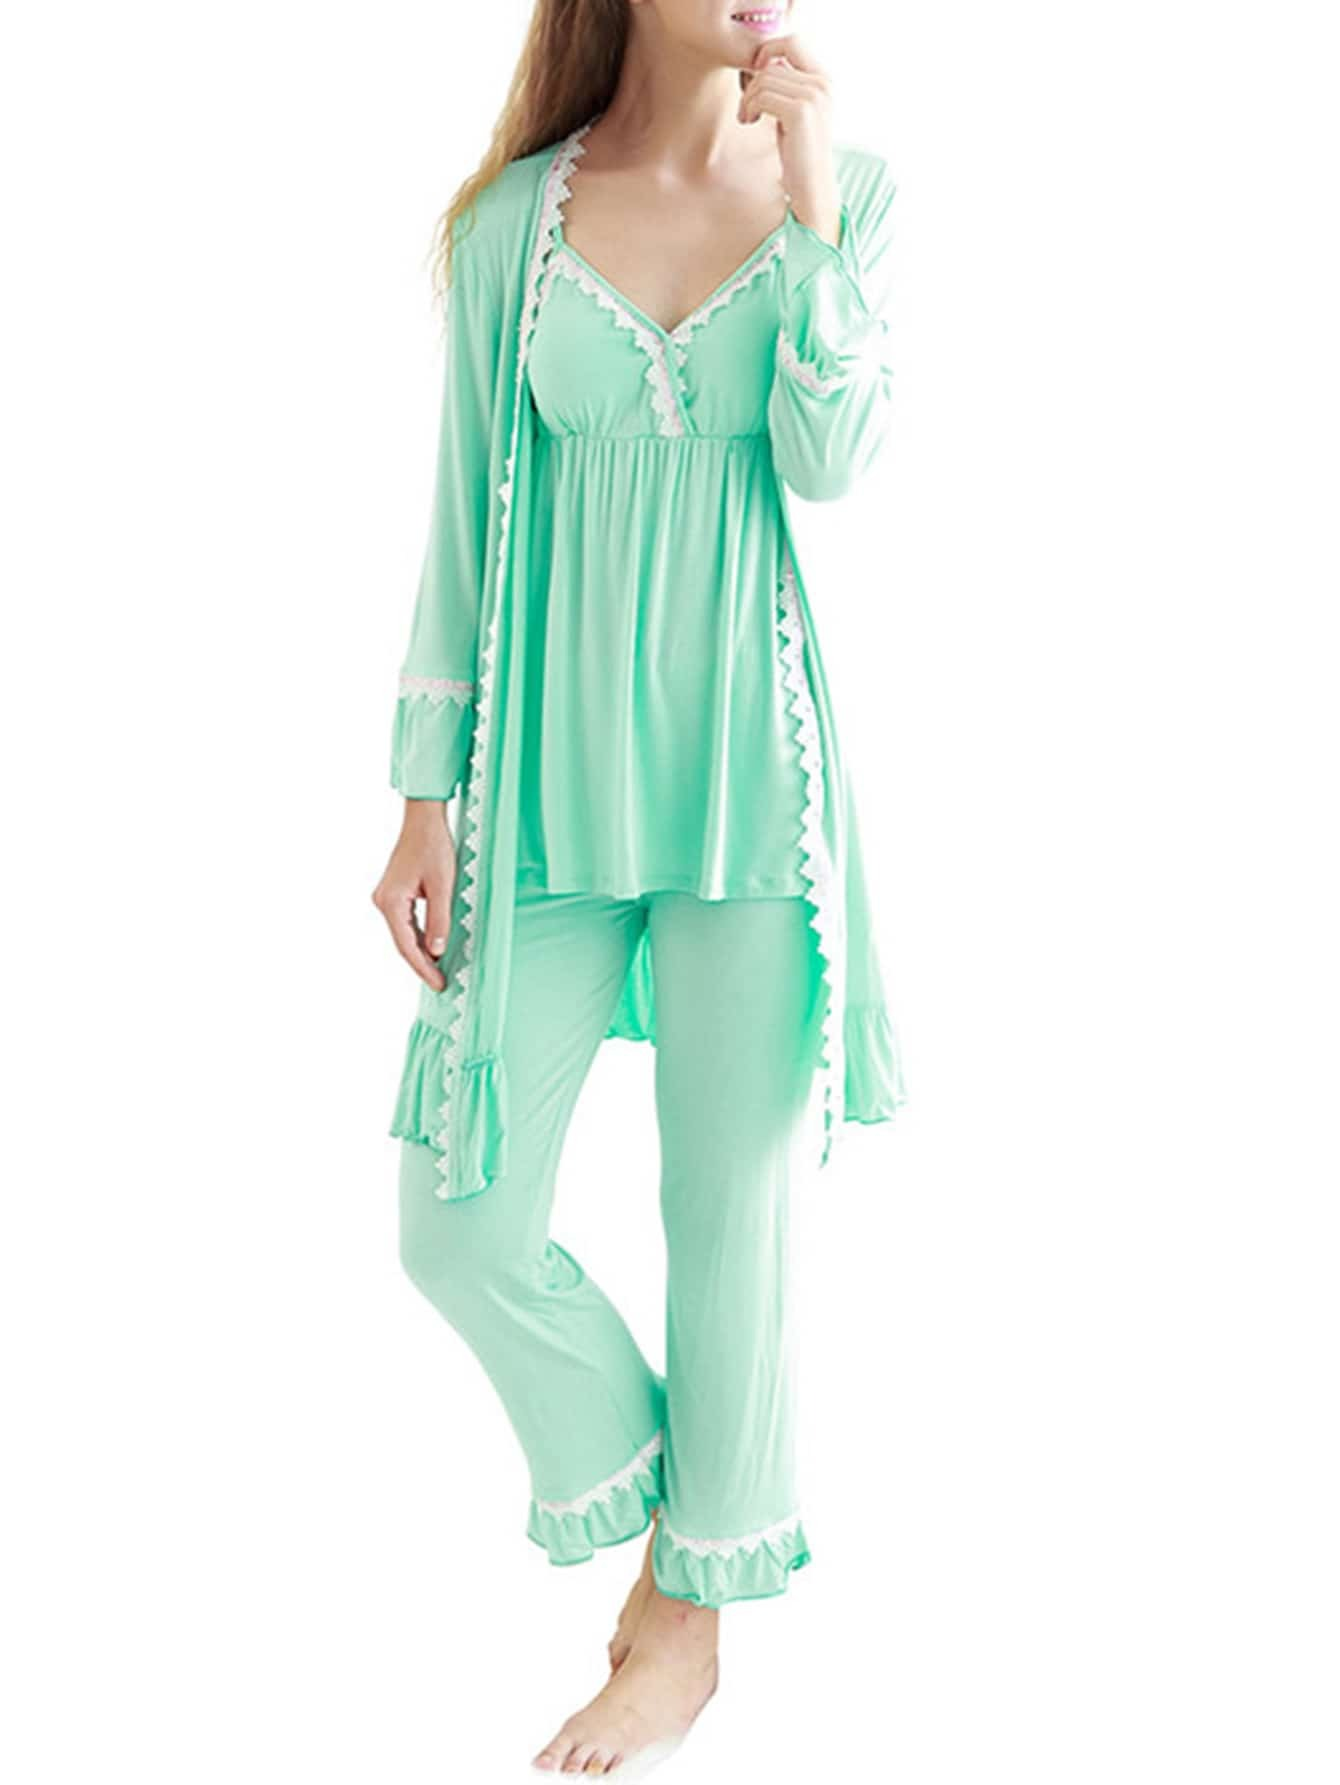 Contrast Lace Frill Trim Cami Pj Set With Robe tiered frill trim lace up cami top